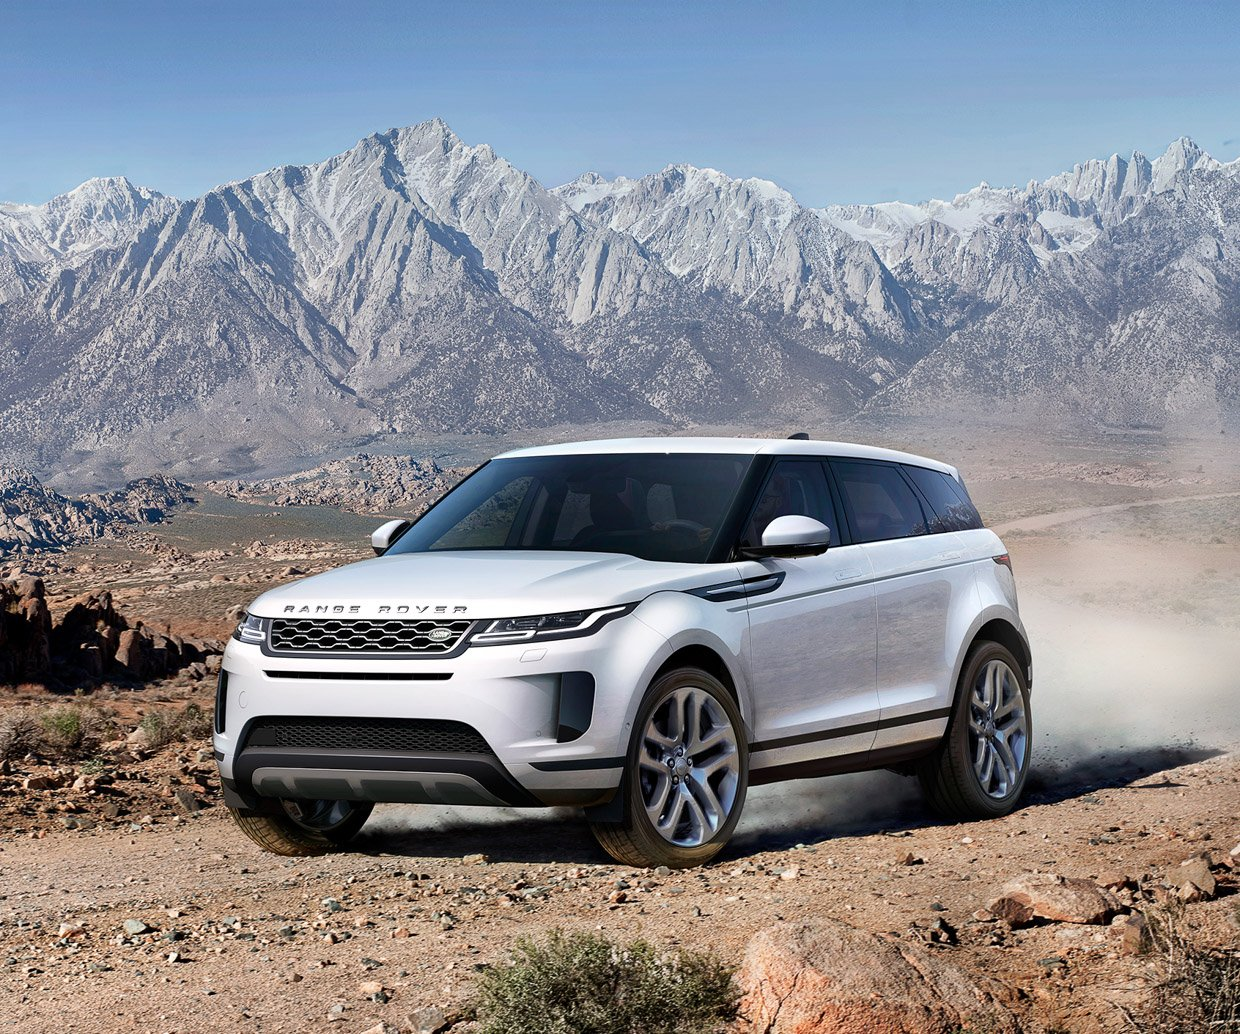 2020 Range Rover Evoque Keeps What Works, Improves Upon It